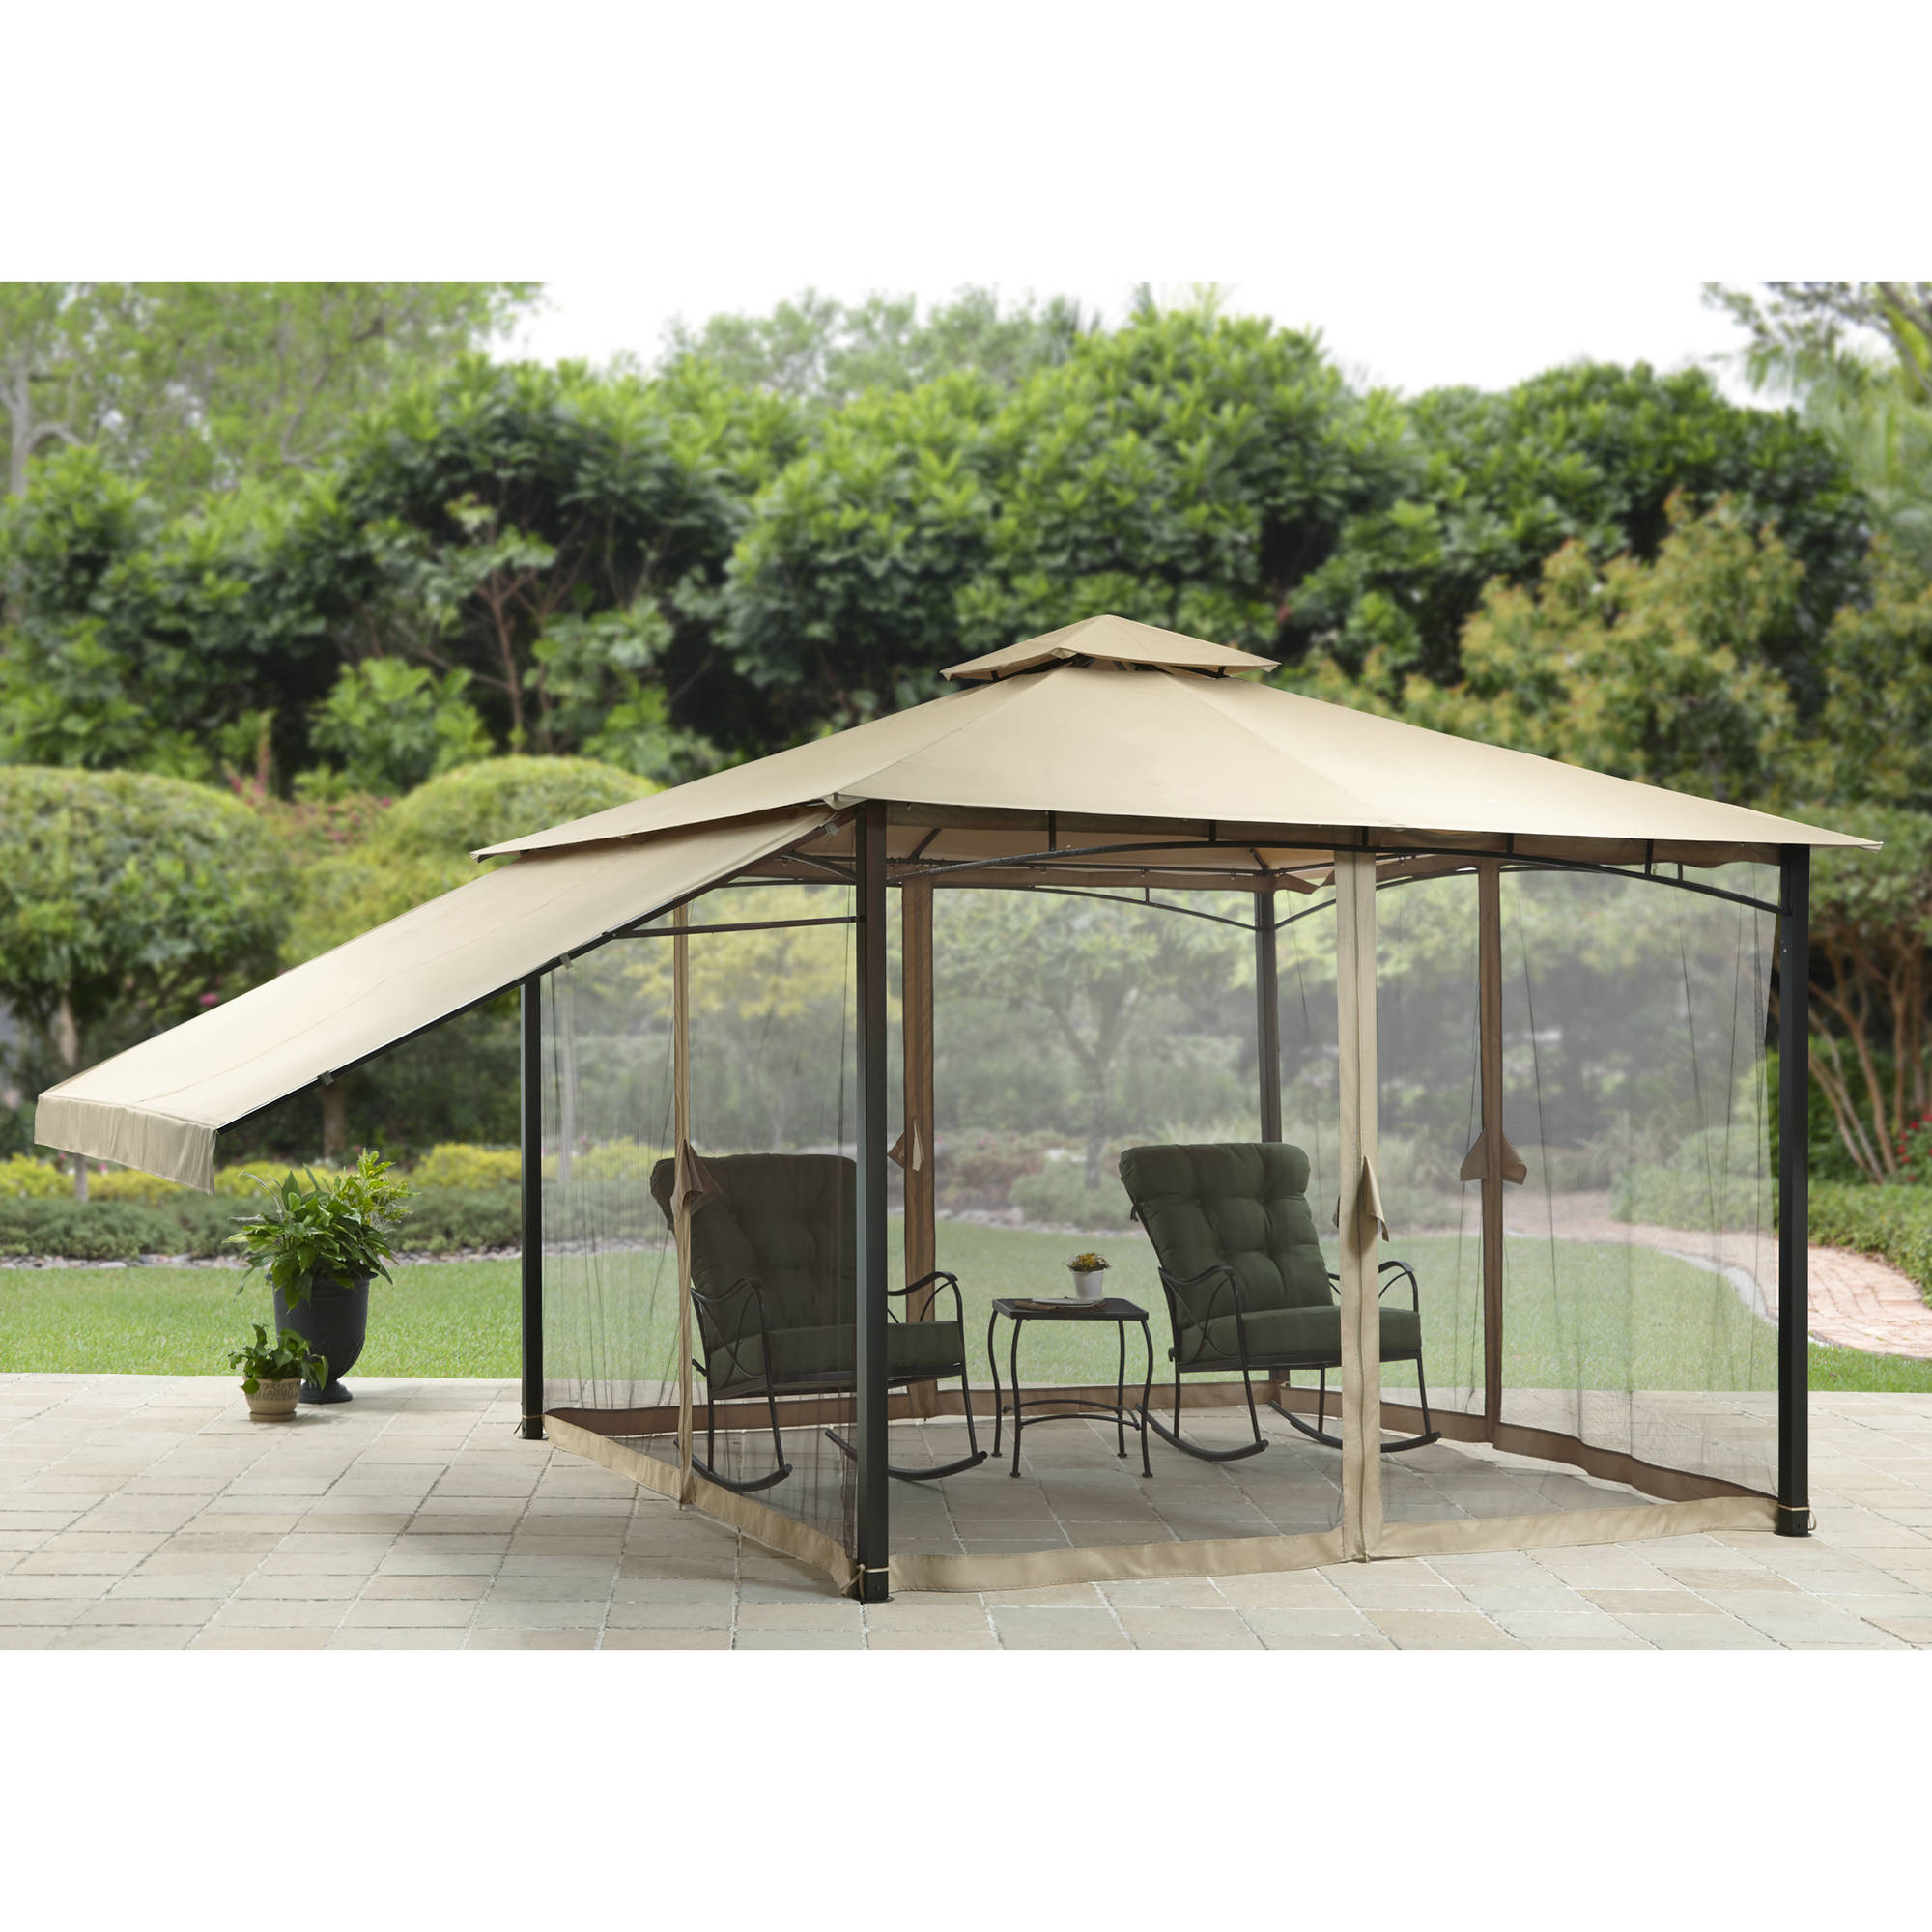 Better Homes And Gardens Canal Drive Cabin Style Gazebo, 11u0027 X 11u0027    Walmart.com